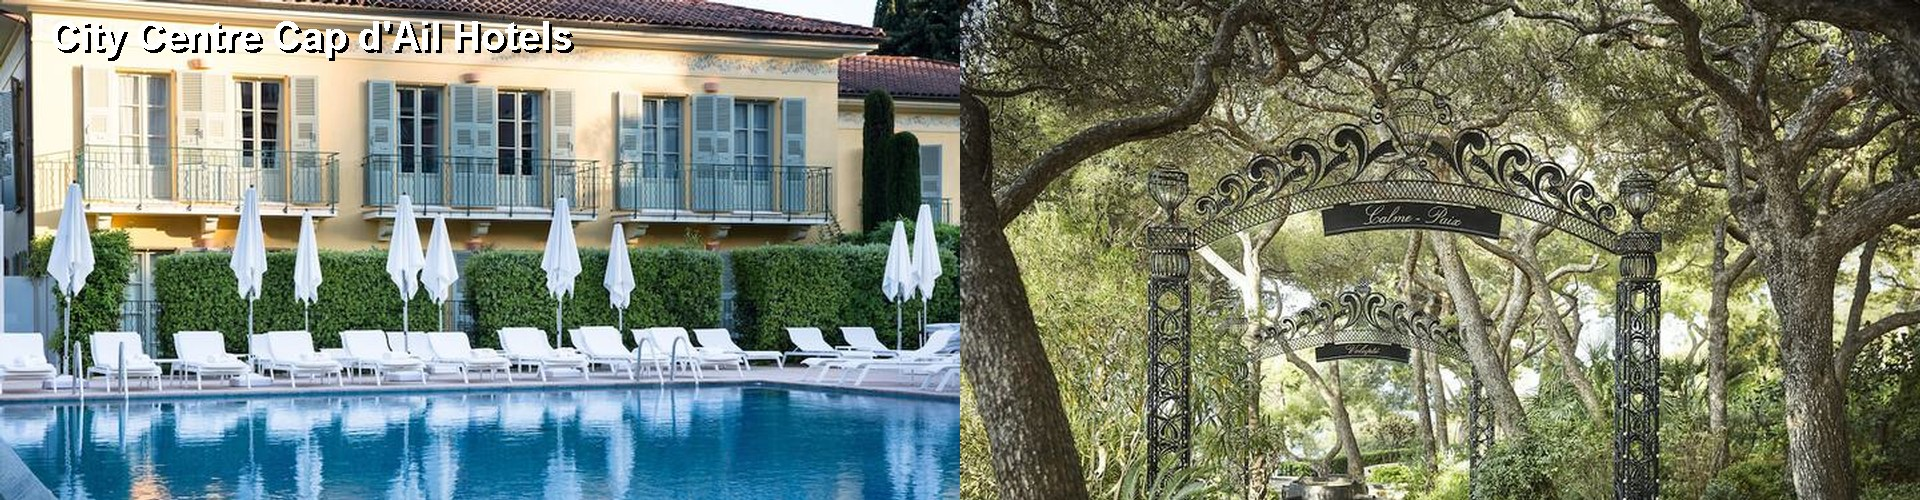 5 Best Hotels near City Centre Cap d'Ail